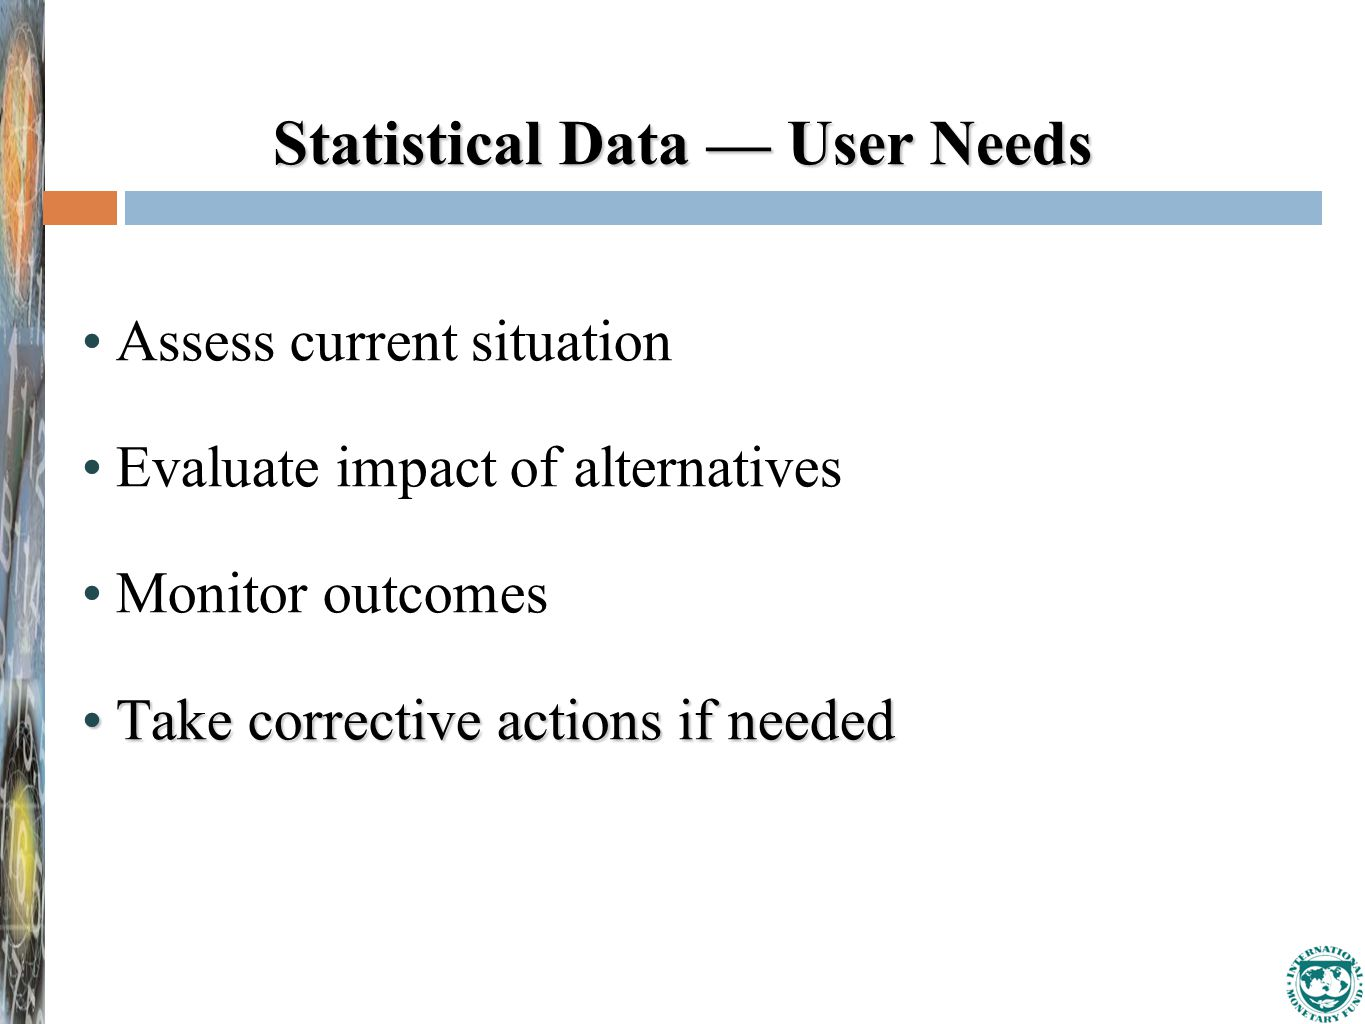 Statistical Data — User Needs Assess current situation Evaluate impact of alternatives Monitor outcomes Take corrective actions if neededTake corrective actions if needed